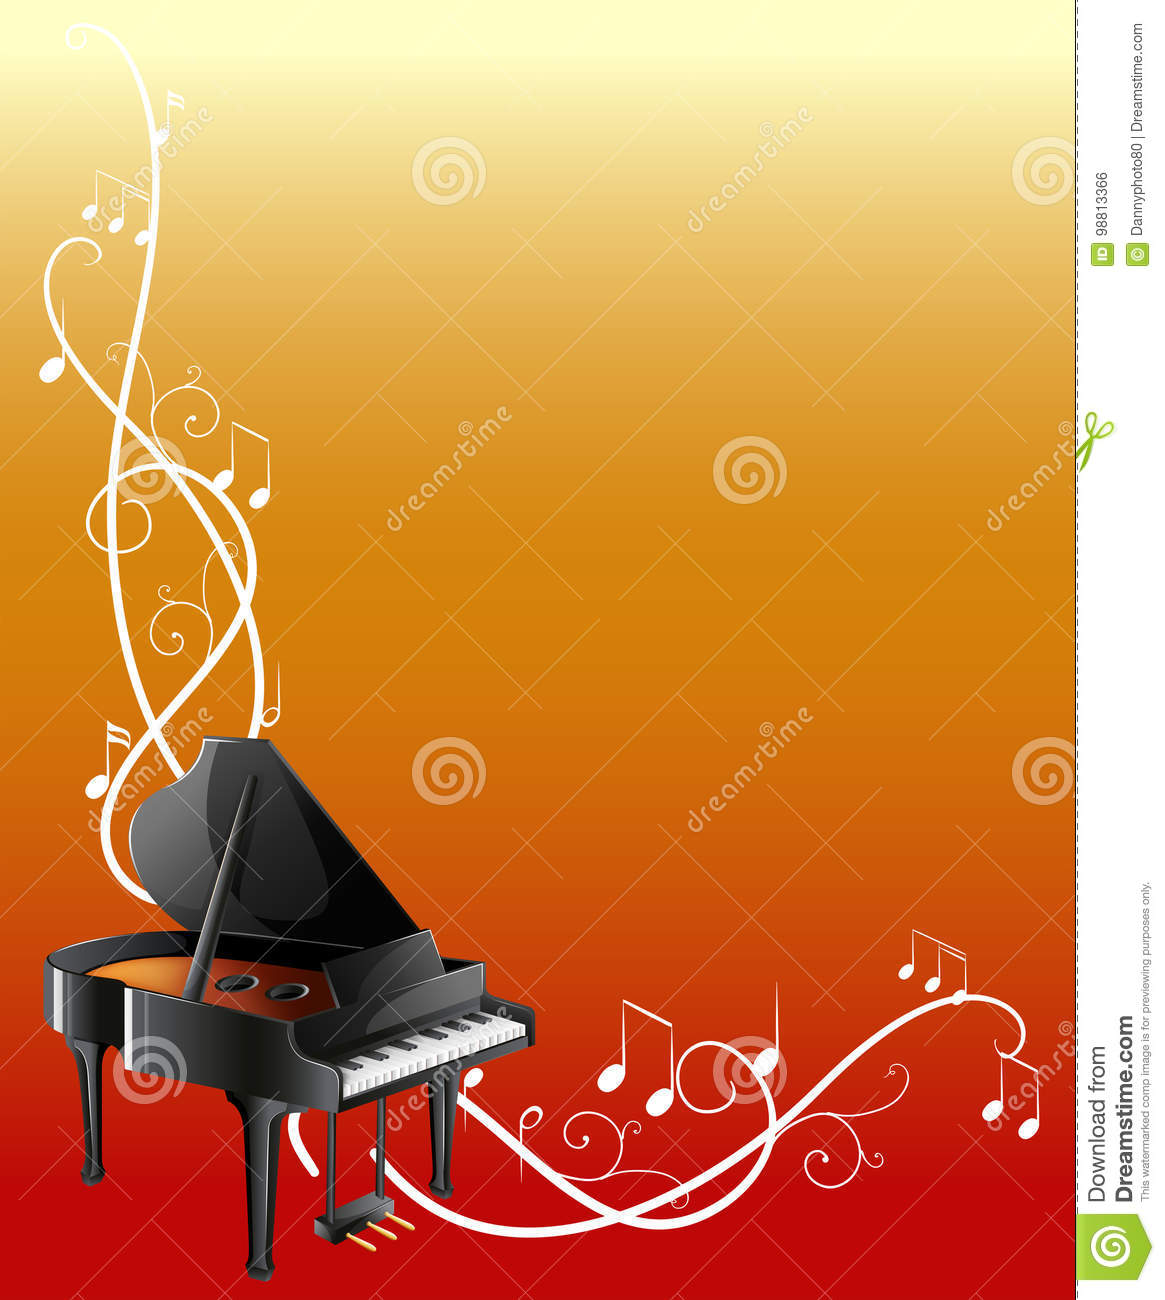 background template with grand piano stock vector illustration of